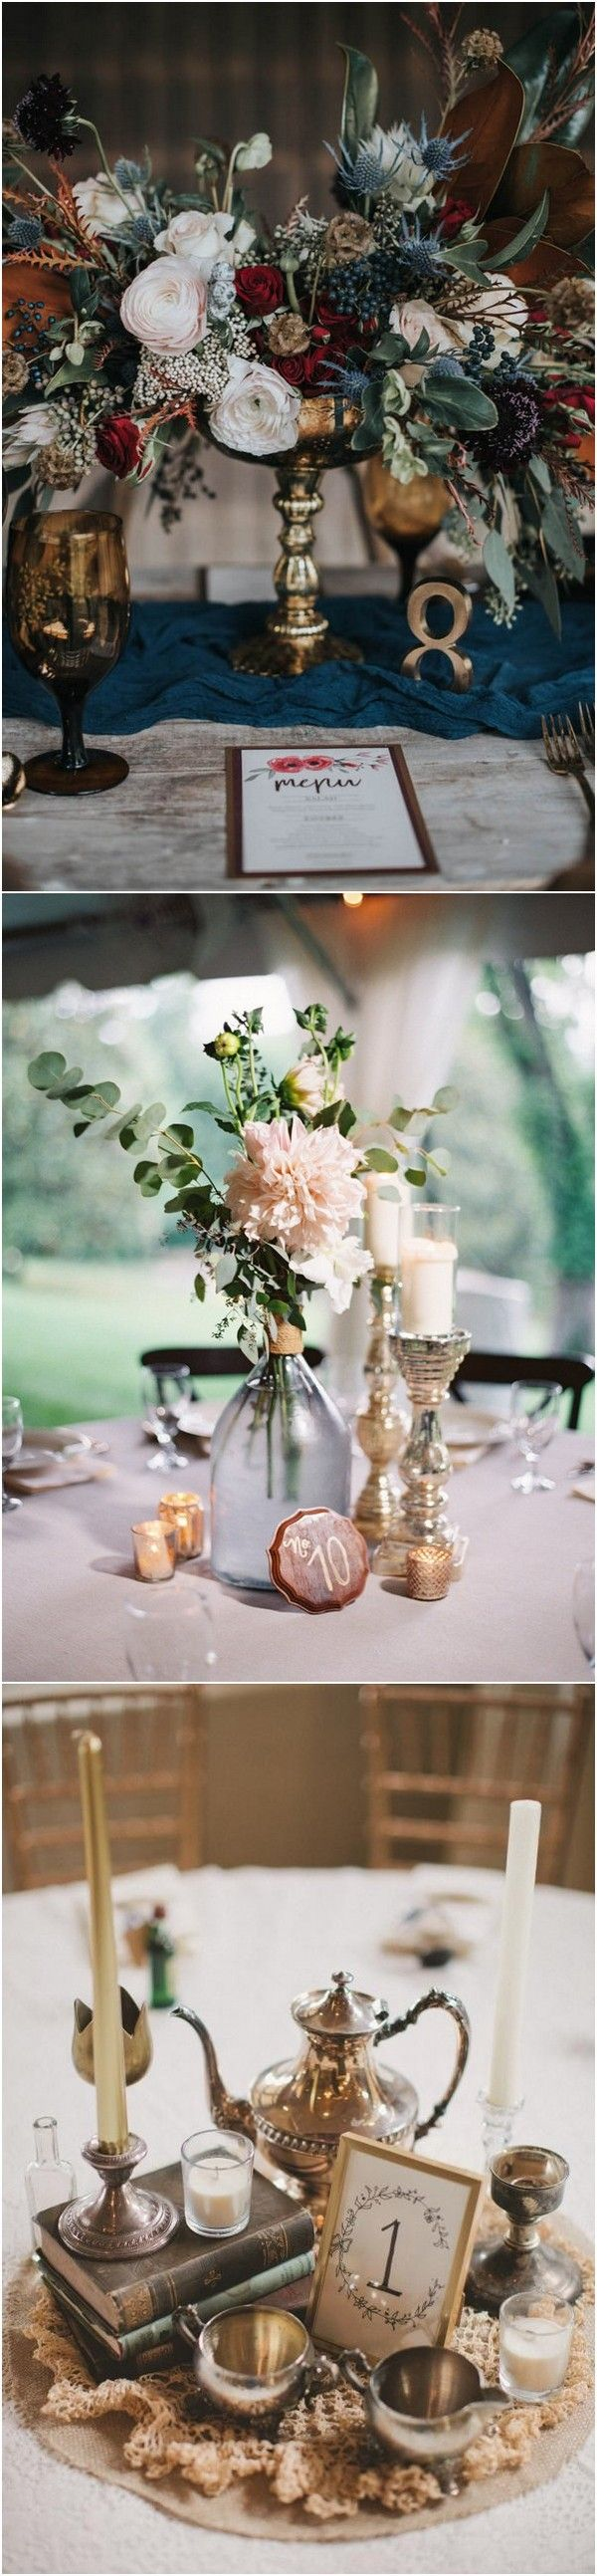 candle sticks vintage wedding centerpiece ideas